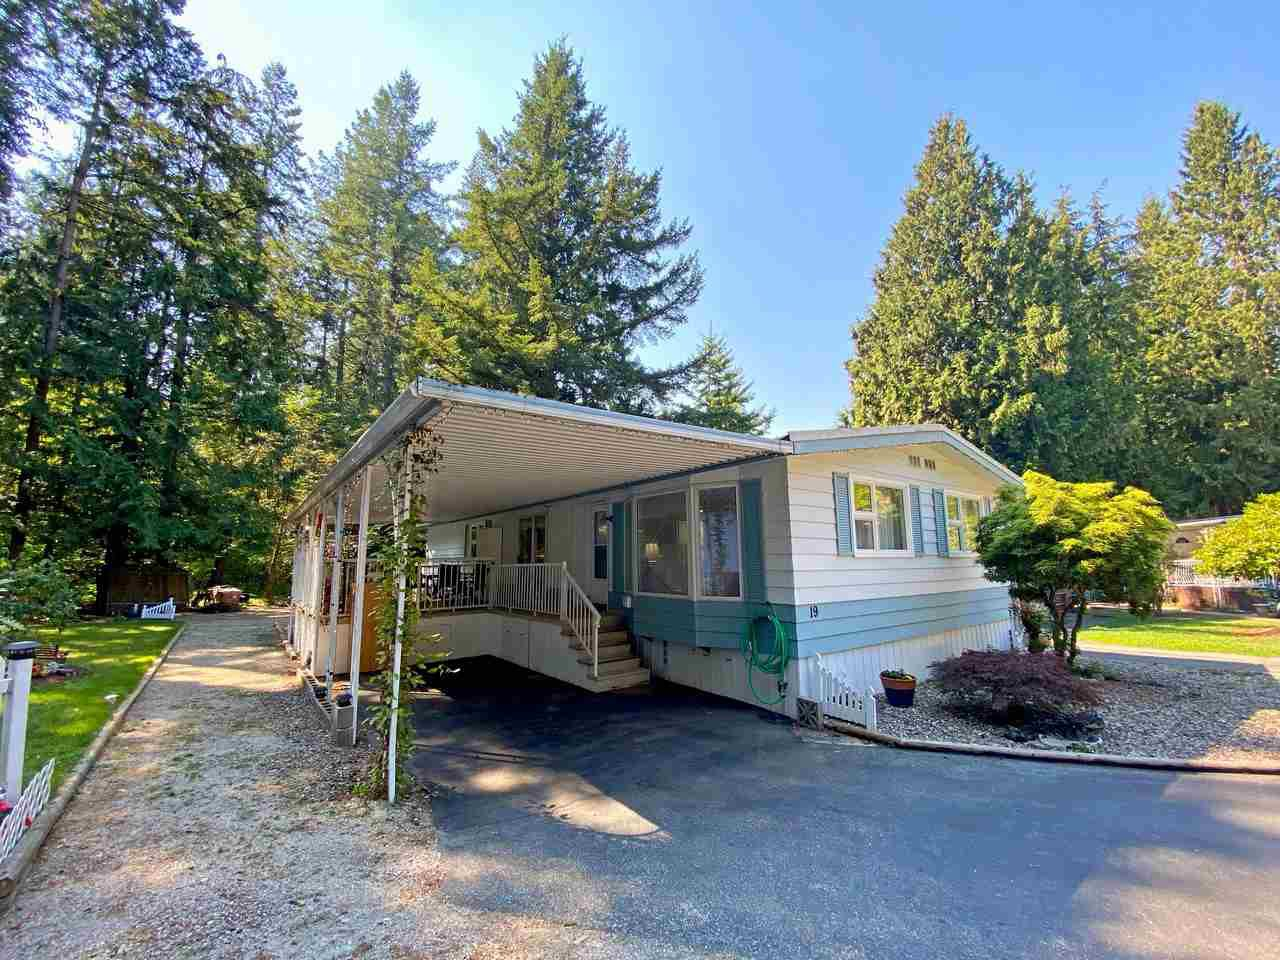 """Main Photo: 19 2306 198 Street in Langley: Brookswood Langley Manufactured Home for sale in """"CEDAR LANE SENIORS PARK"""" : MLS®# R2497884"""